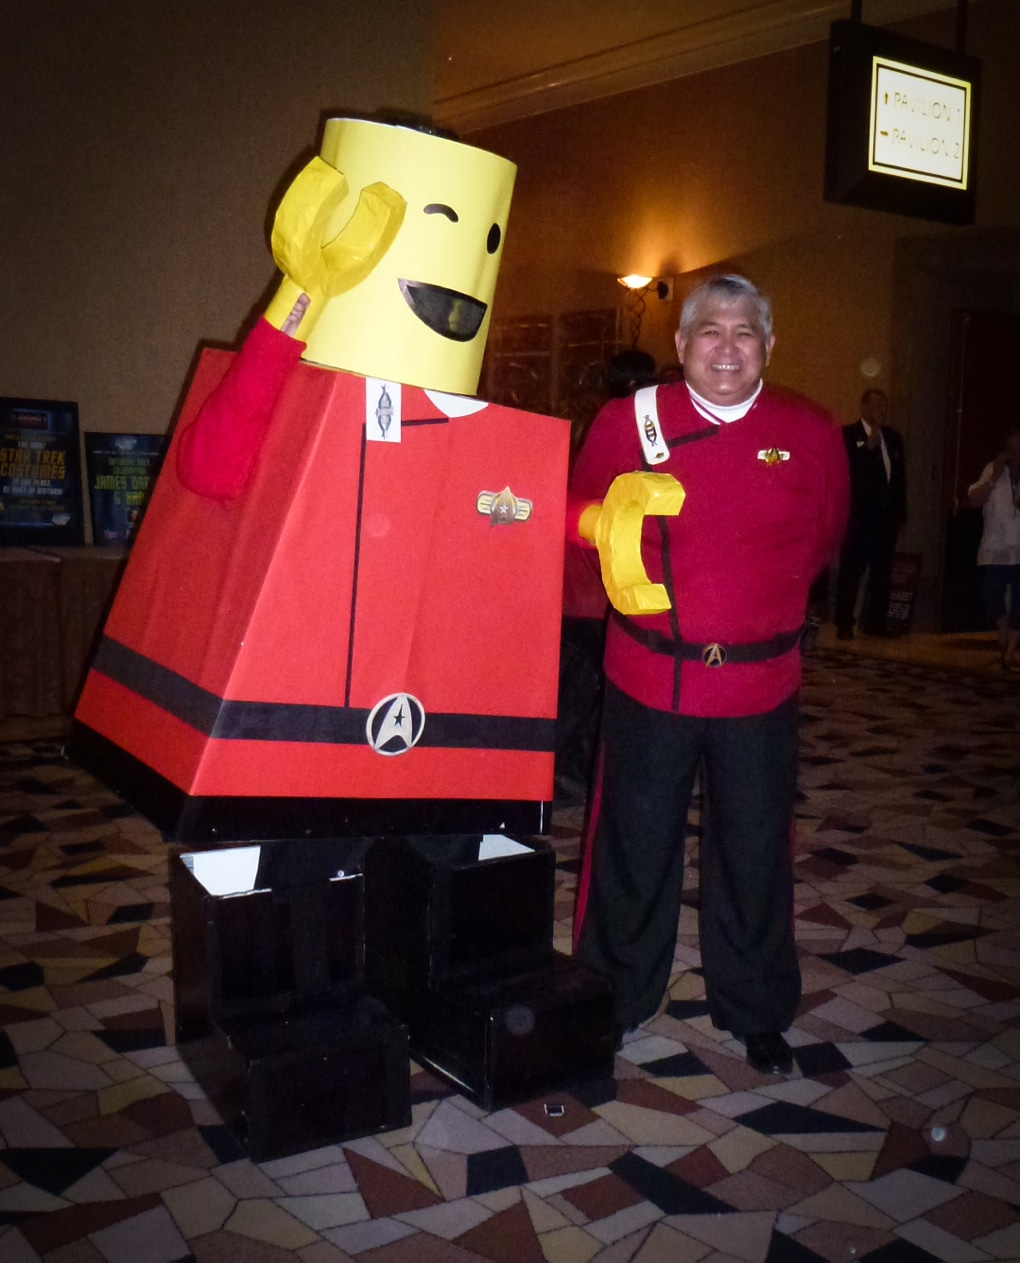 space lego star trek las vegas 2011